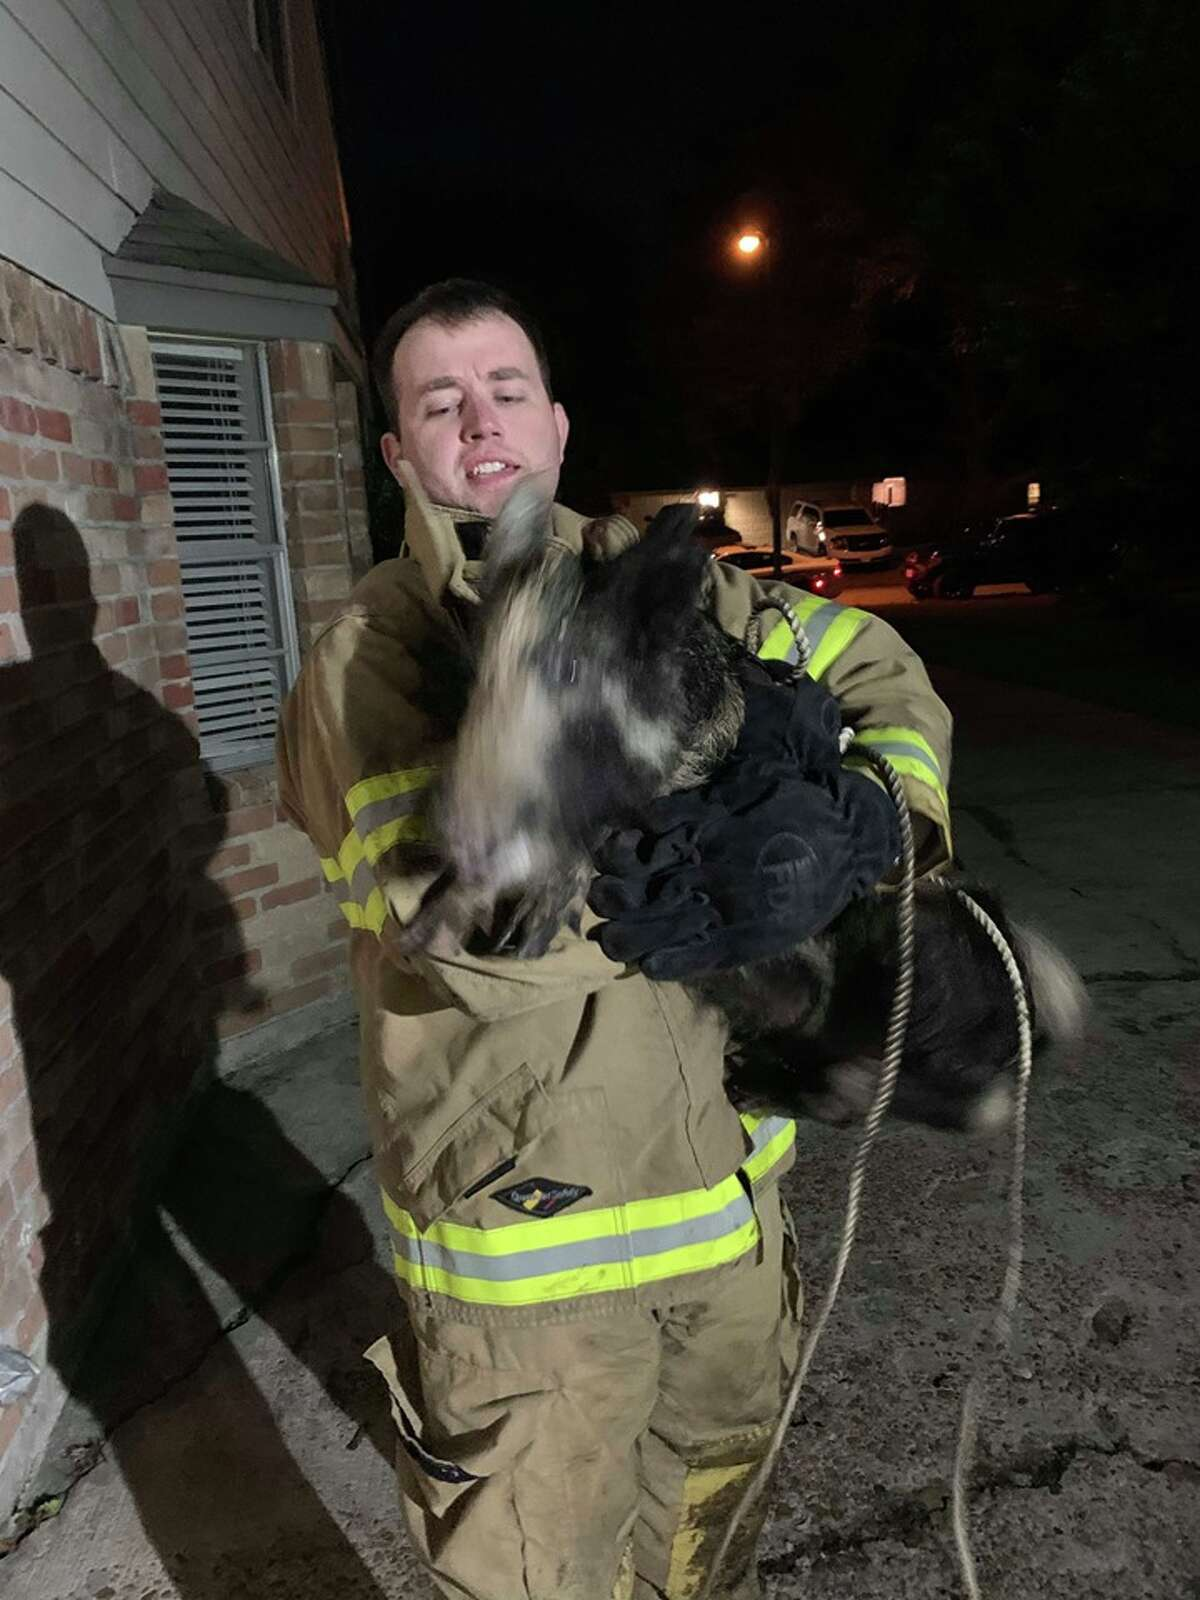 After a feral hog chased his 14-year-old daughter last Friday, Atascocita resident David Powe wrangled the animal himself.